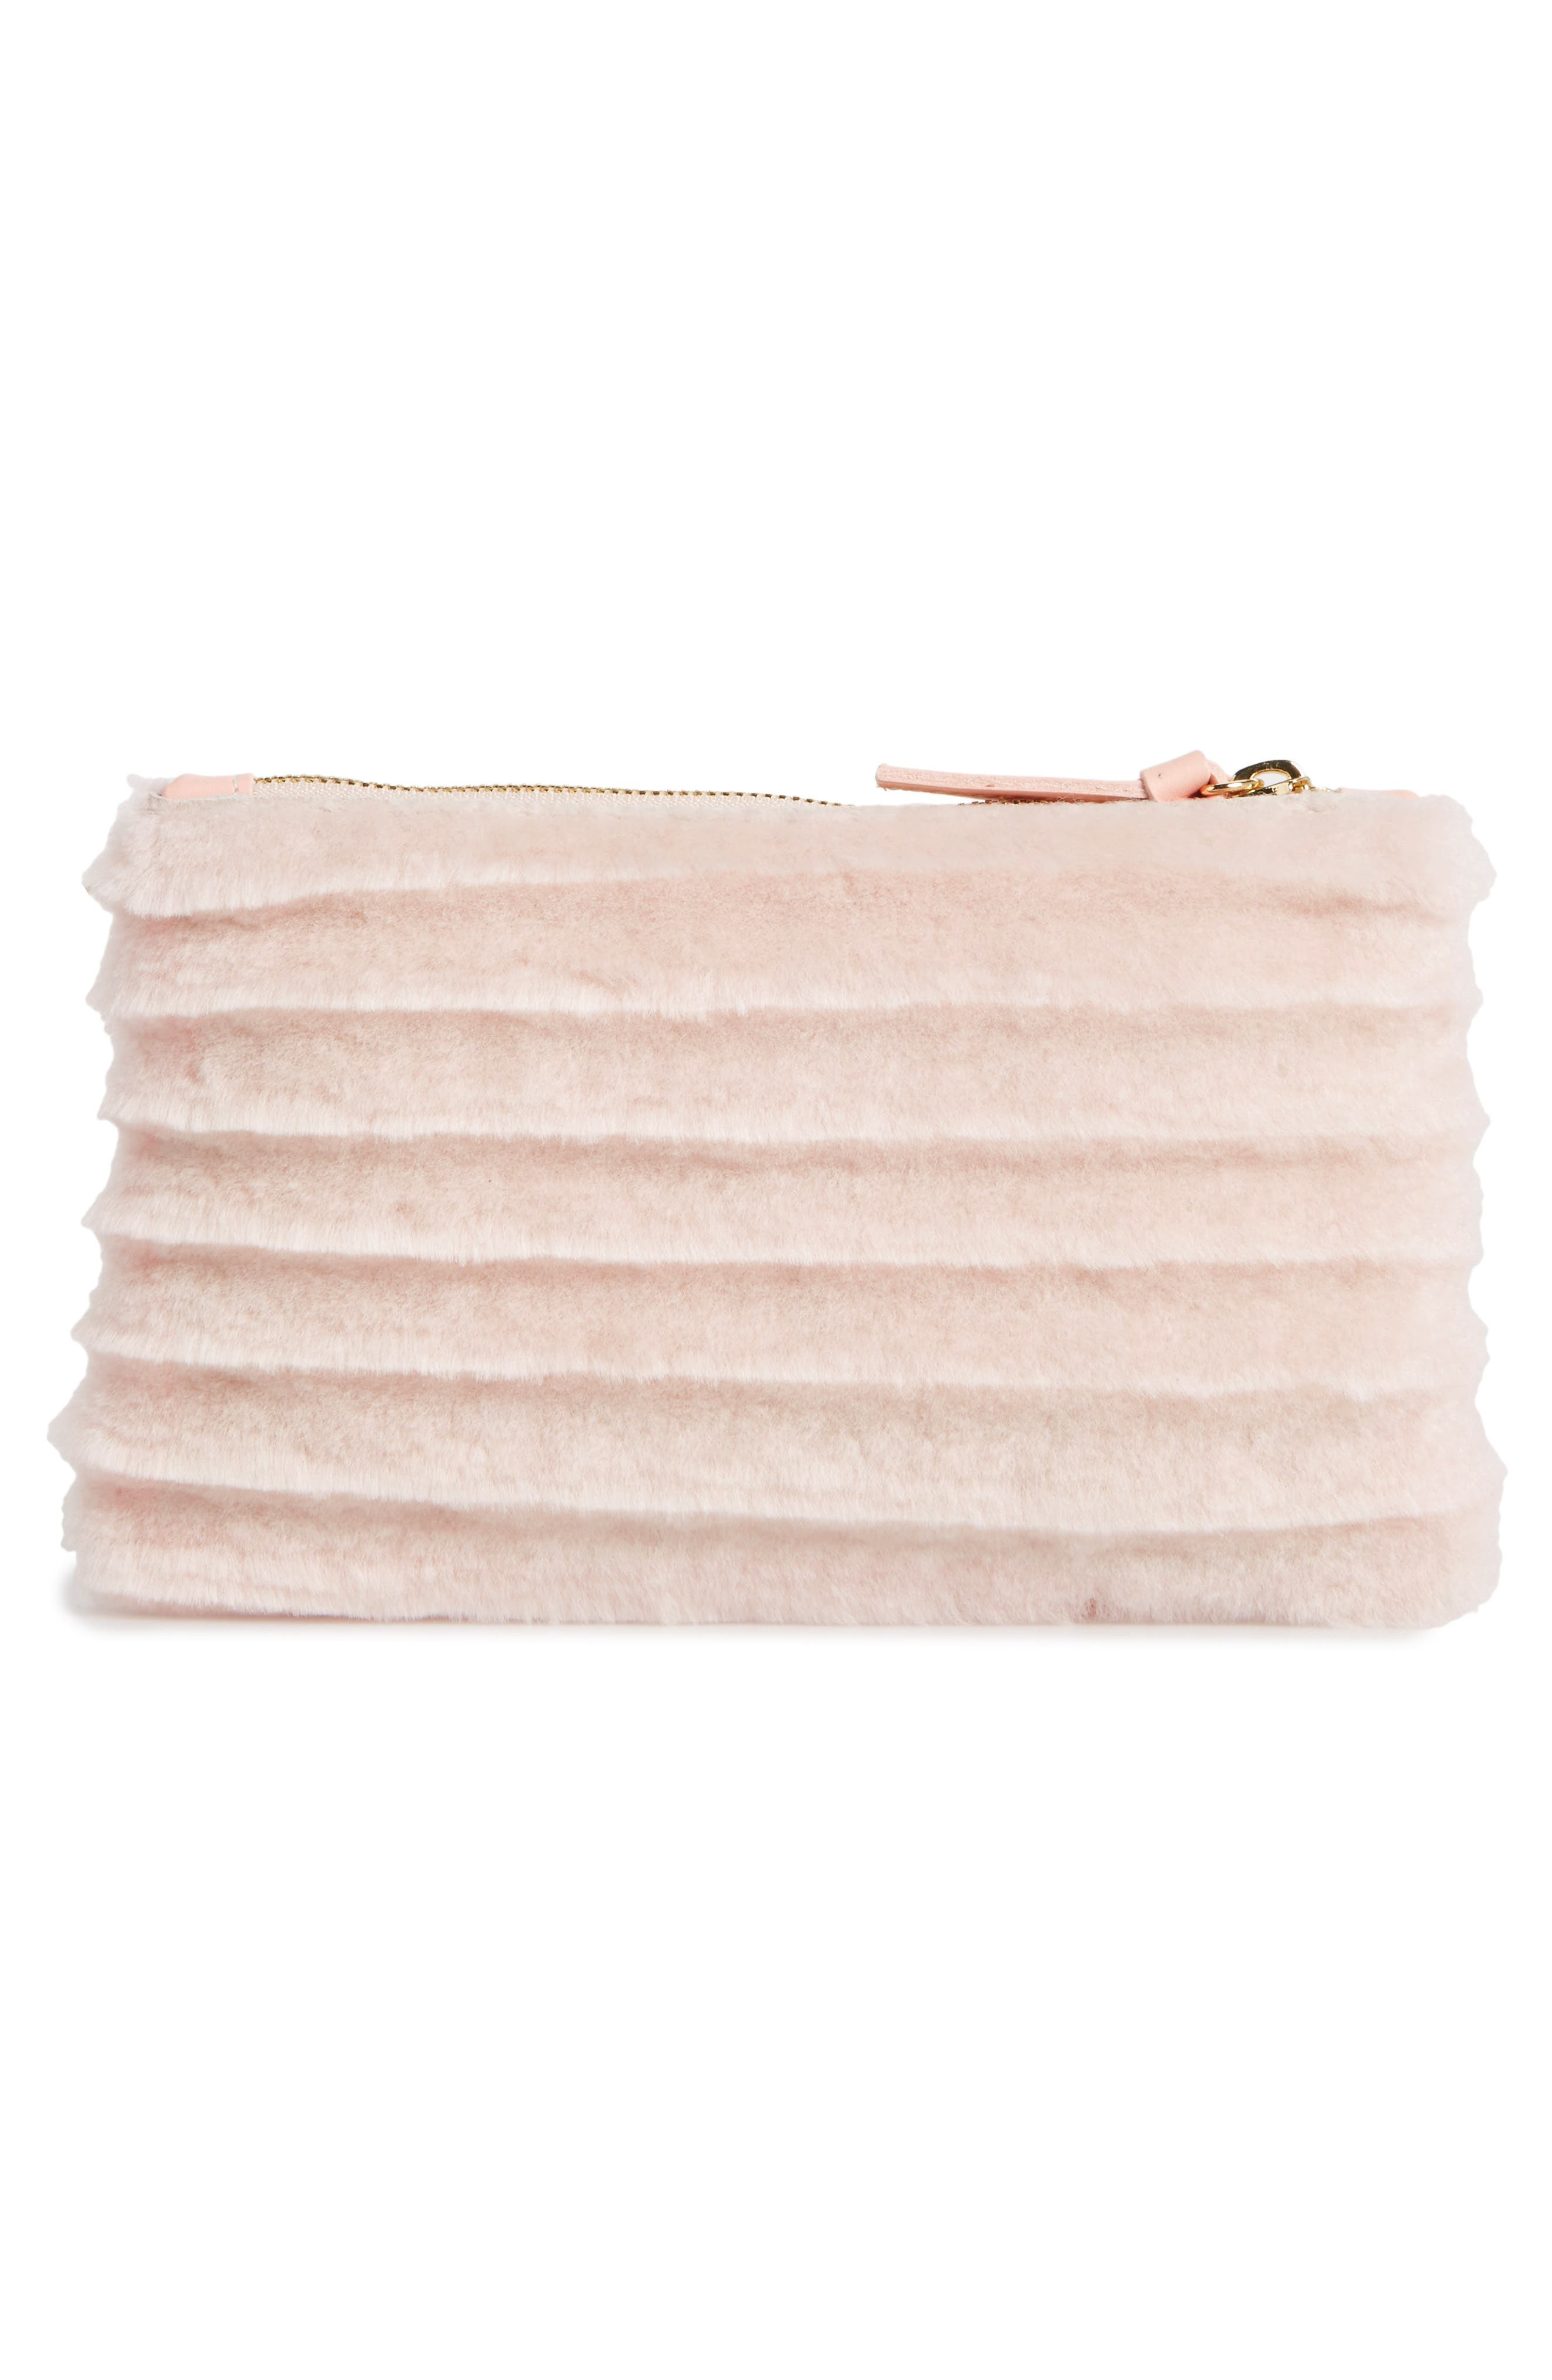 Genuine Shearling Pouch,                             Alternate thumbnail 3, color,                             650